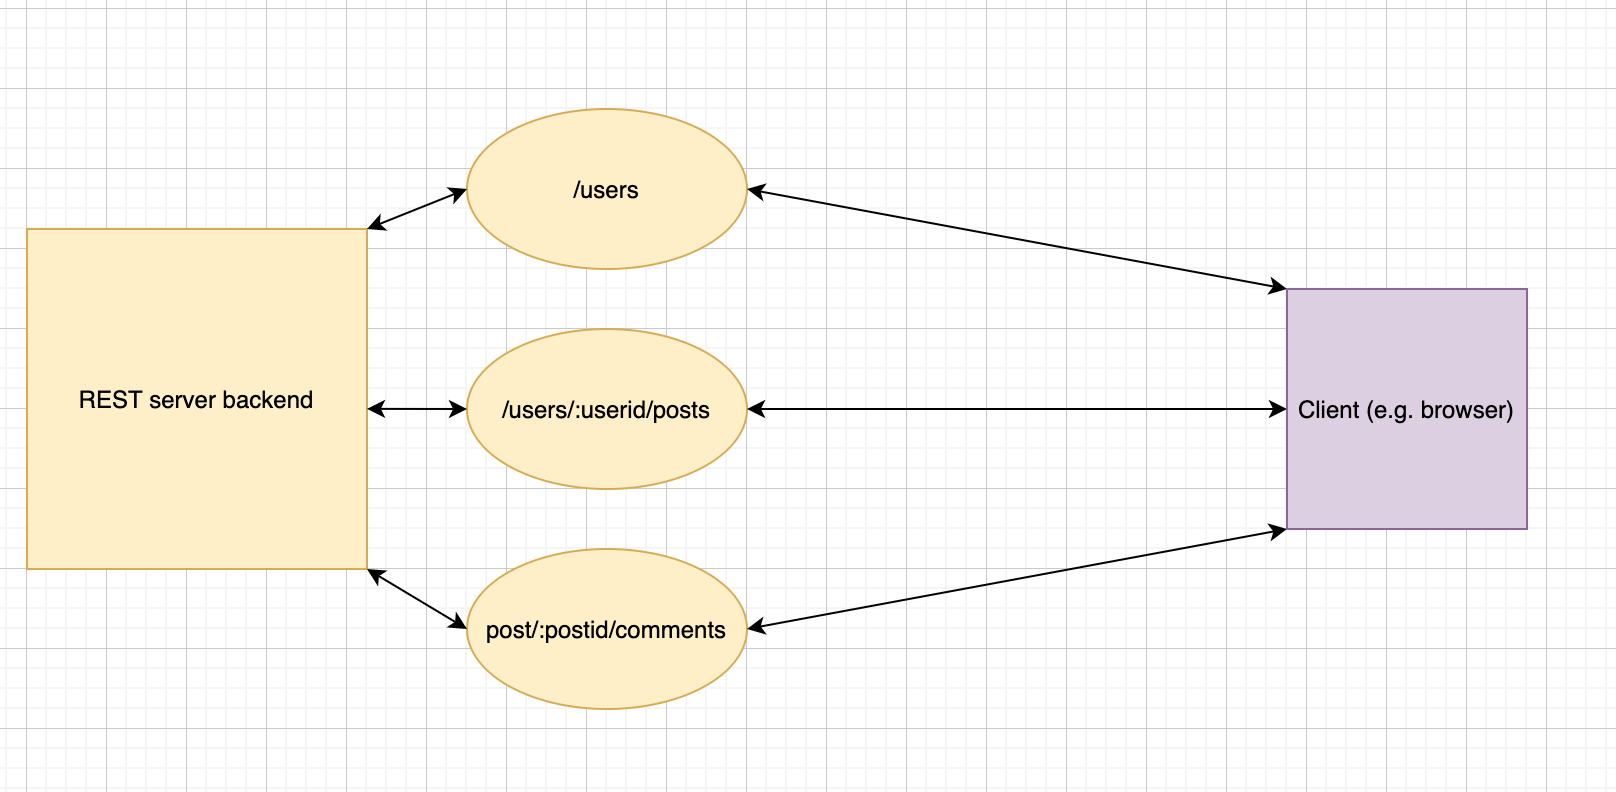 RESTful architecture — all requests from top to bottom must be made to access comments on a post